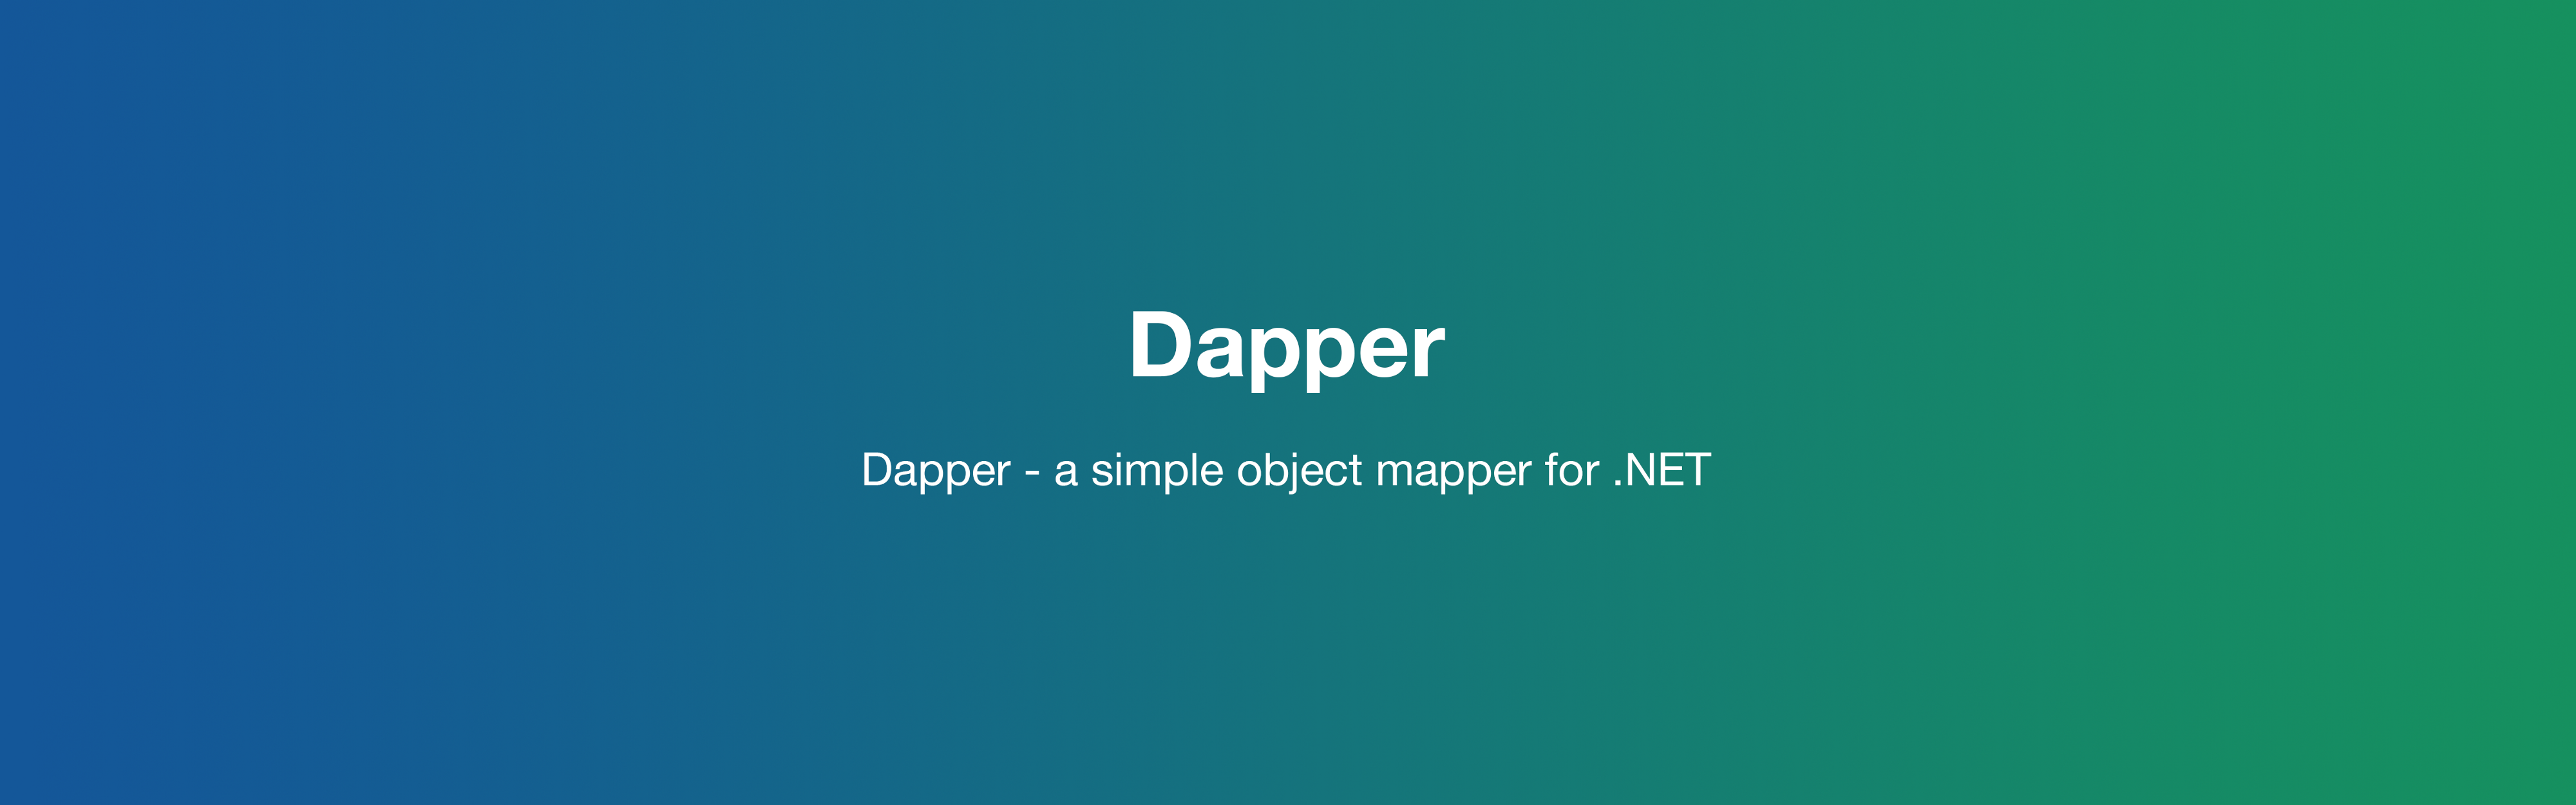 Dapper Using Lists - ITNEXT